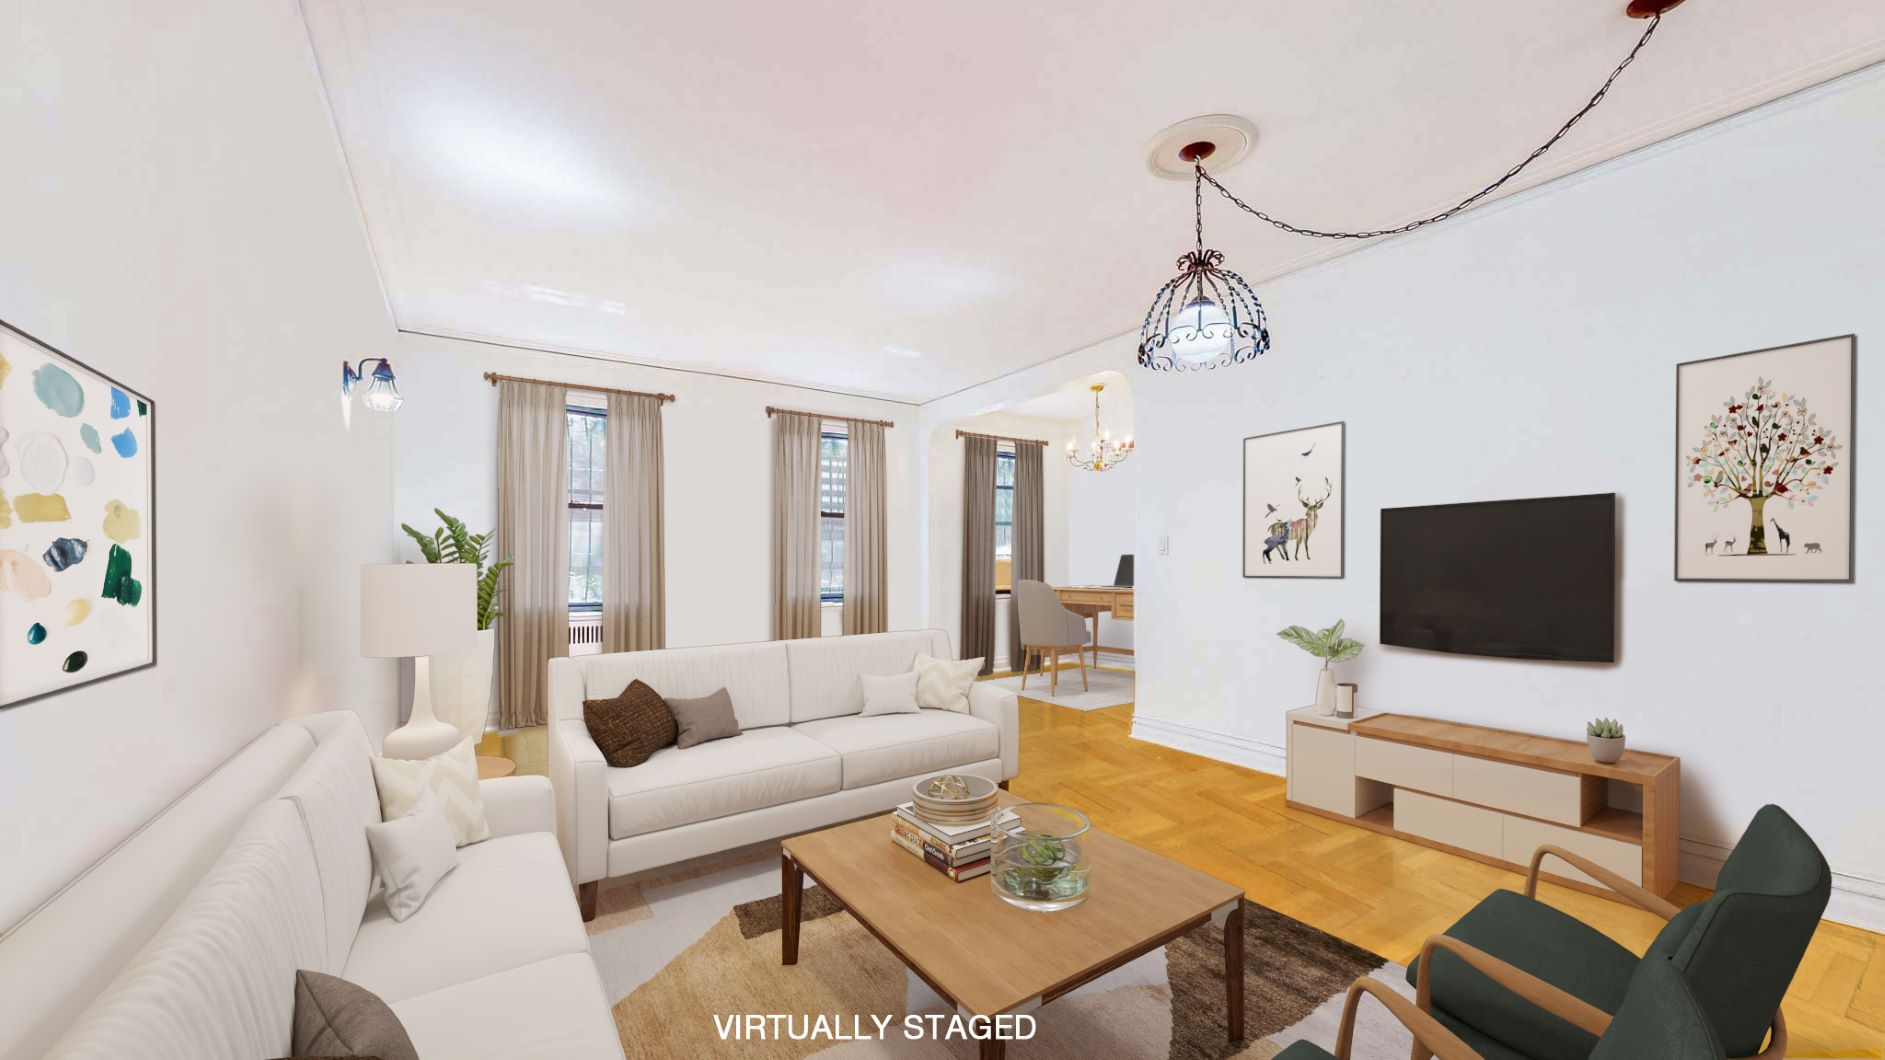 161 East 88th Street, New York, New York, New York, United States 10128, 2 Bedrooms Bedrooms, ,2 BathroomsBathrooms,Co-op,Off Market,East 88th Street,1159